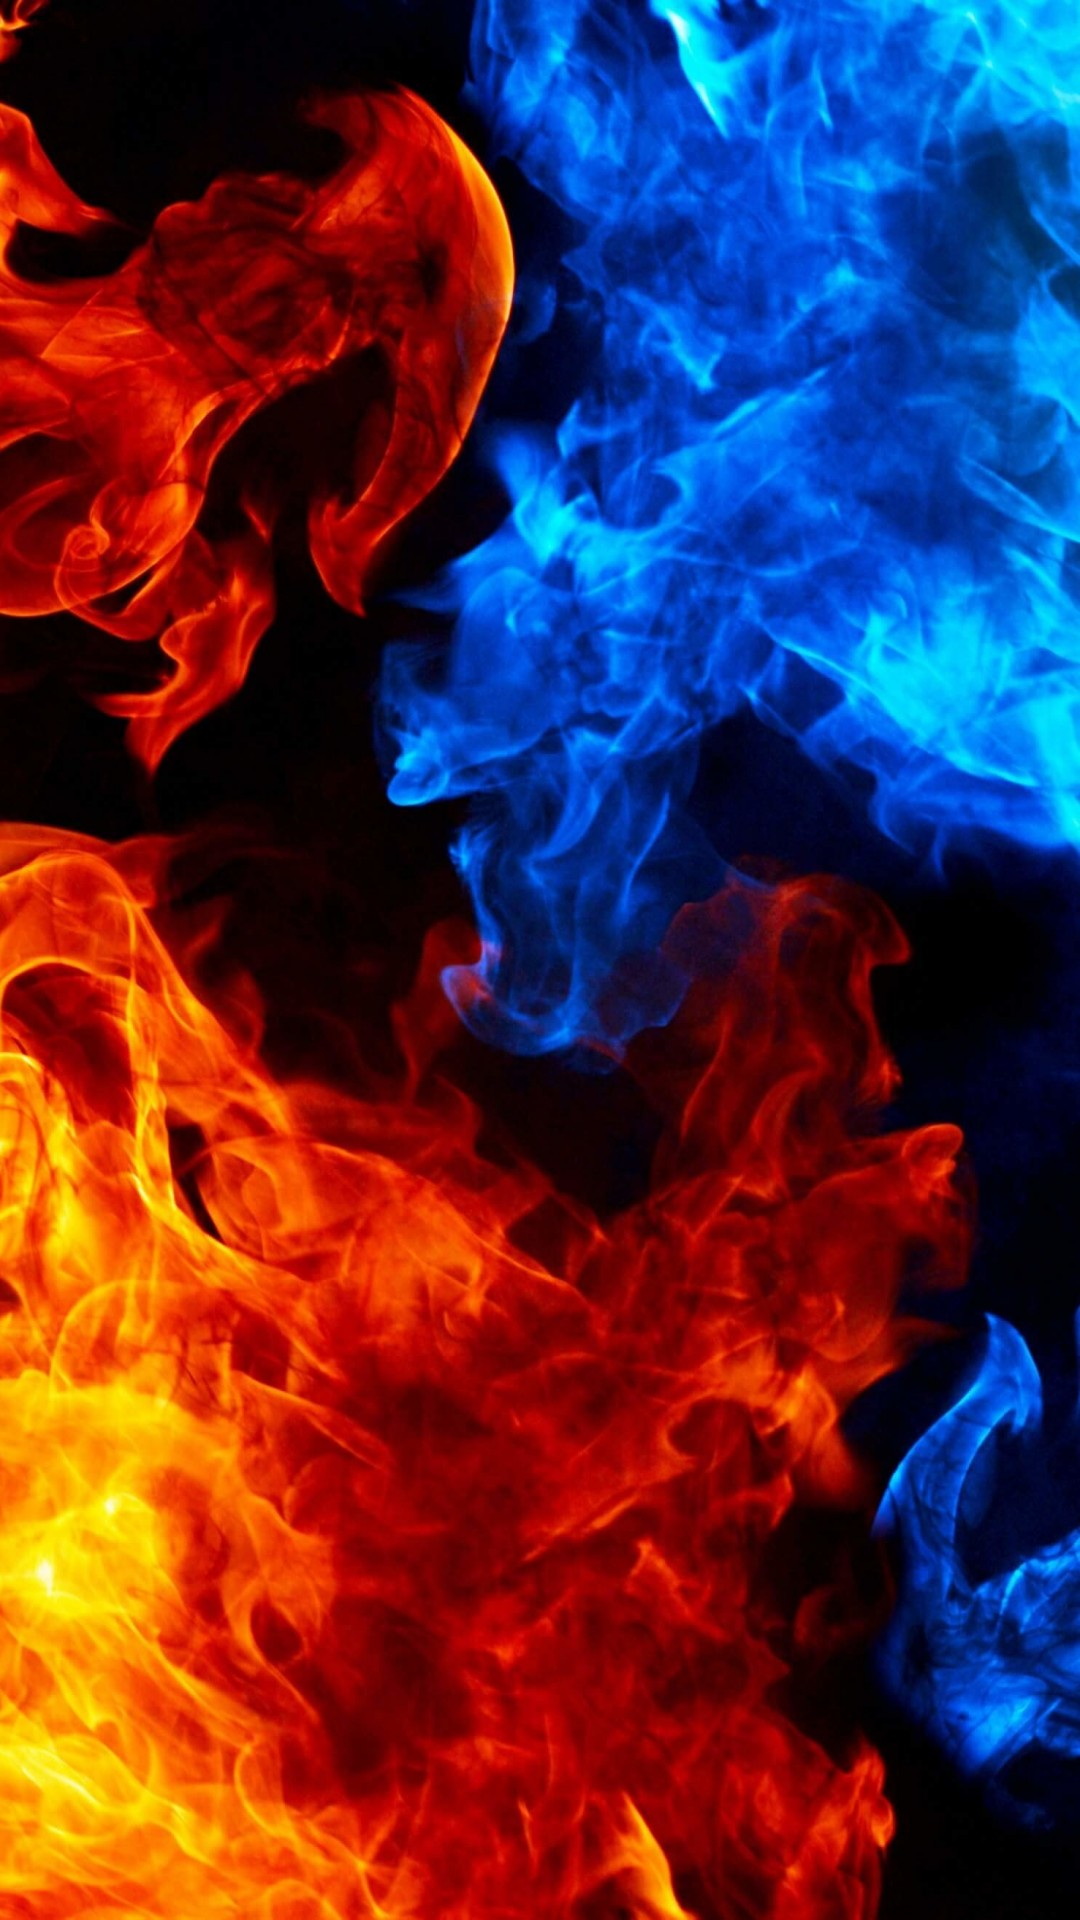 Blue And Red Fire Wallpaper for SONY Xperia Z2